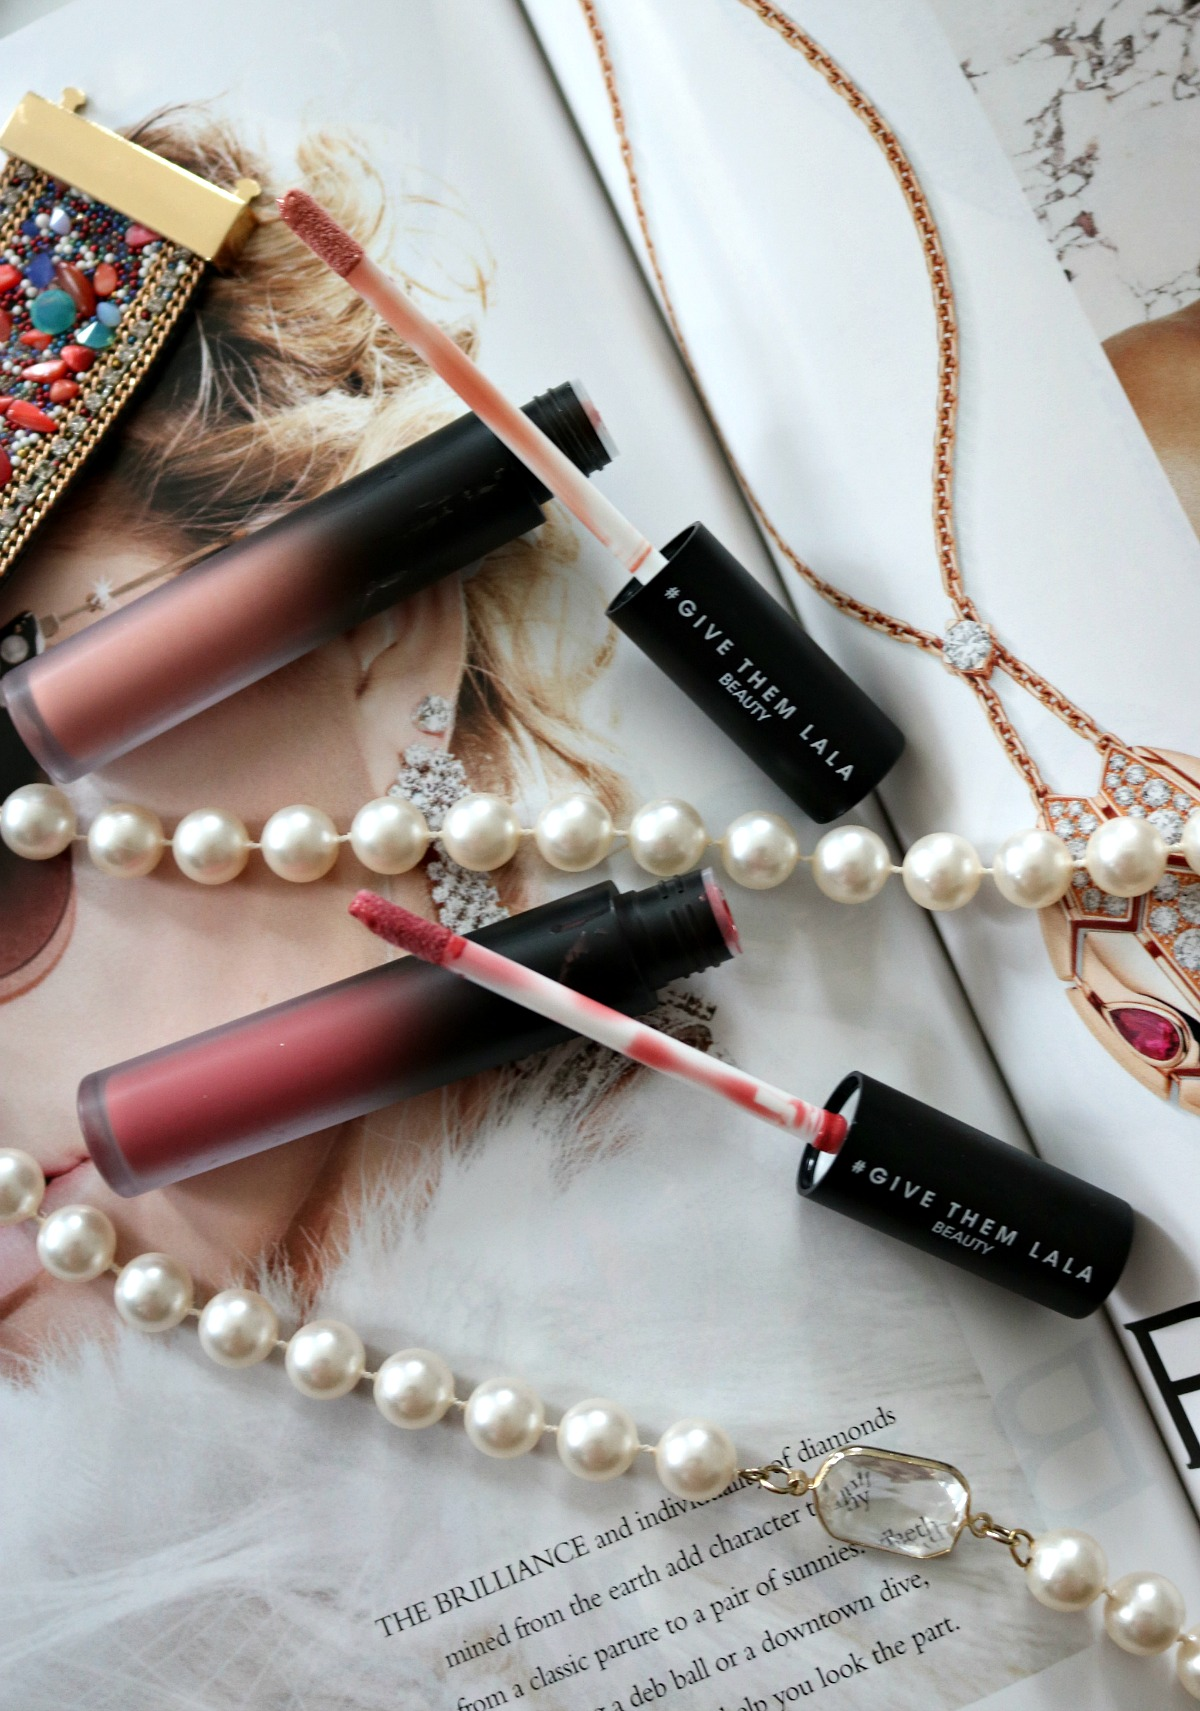 Most Popular Blog Posts of 2018 I Give Them Lala Beauty Lip Gloss Review I DreaminLace.com #CrueltyFree #LipGloss #CrueltyFreeBeauty